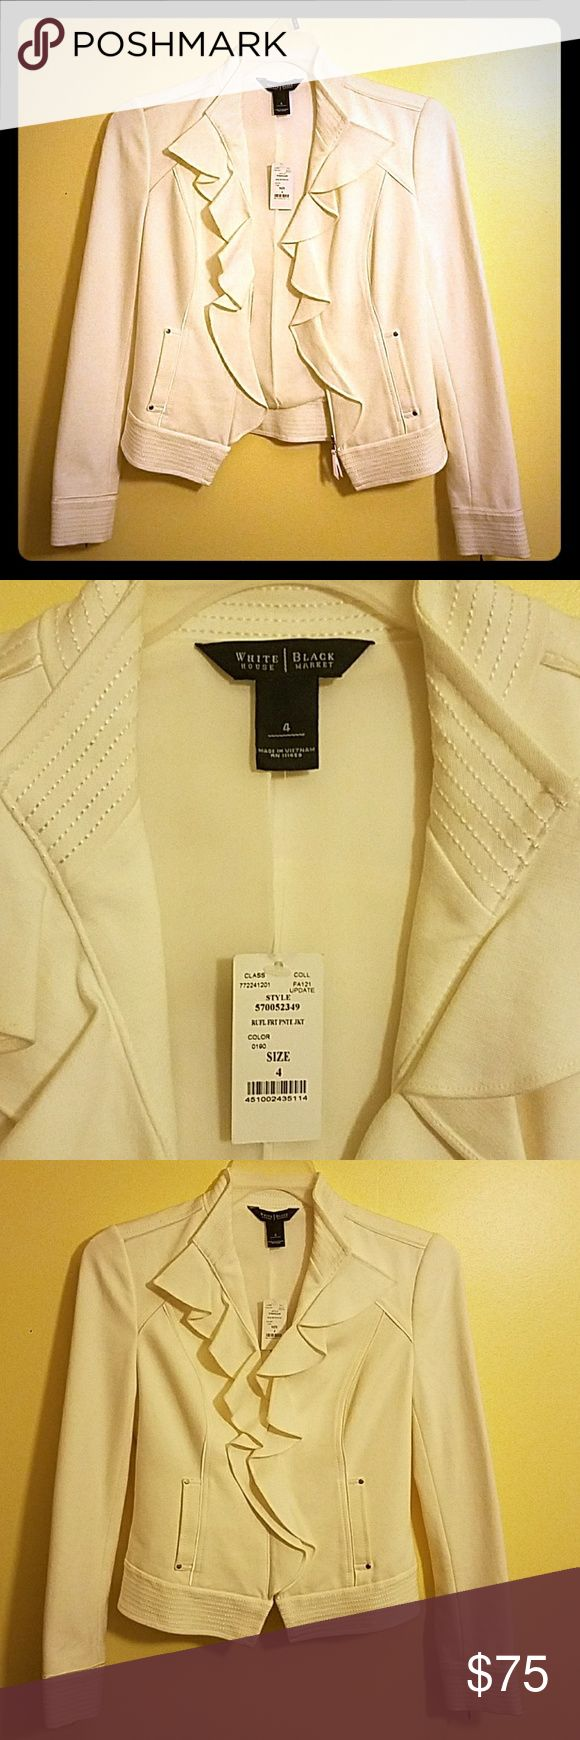 NWT WHITE HOUSE BLACK MARKET SIZE 4 JACKET SUPER CHIC, BRAND NEW WITH TAG, NEVER WORN, WHITE HOUSE BLACK MARKET WOMEN'S SIZE 4 JACKET IN CREAM/IVORY. I LOST THE BOTTOM PORTION OF THE PRICE TAG. FRONT ZIPPERS HALF WAY UP,  SLEEVES OF THE JACKET HAVE ZIPPERS AS WELL THAT ZIP UP ABOUT 3-4 INCHES, ALSO HAS 2 SMALL FRONT POCKETS. JACKET SHELL: 70% VISCOSE, 25% NYLON, 5% SPANDEX. JACKET LINING: 100% POLYESTER. DRY CLEAN ONLY White House Black Market Jackets & Coats